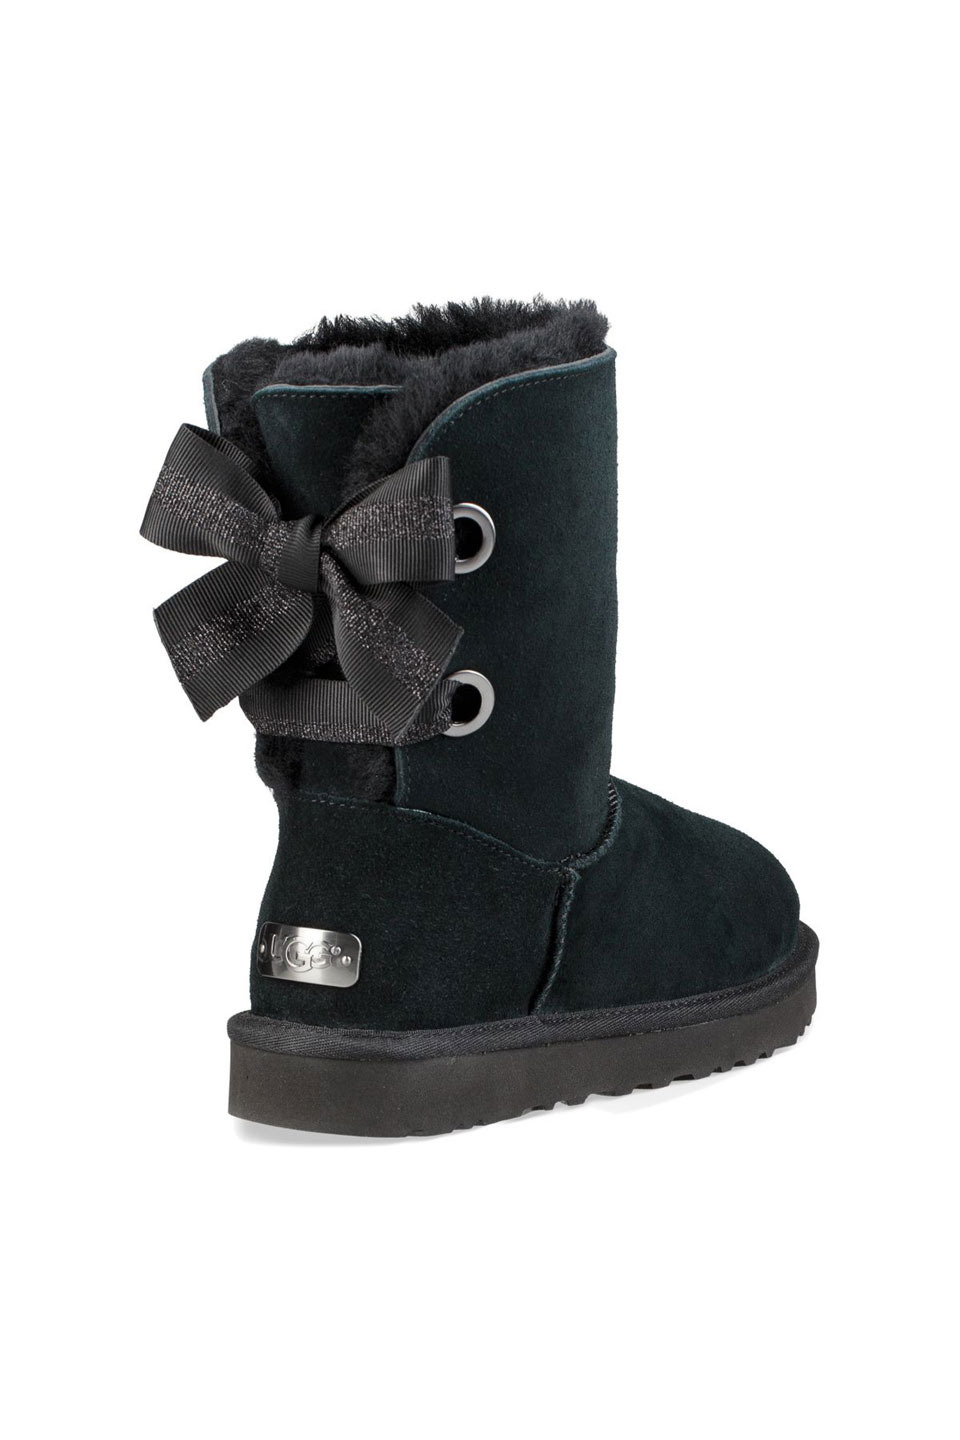 Customizable Bailey Bow Short Boot in Black